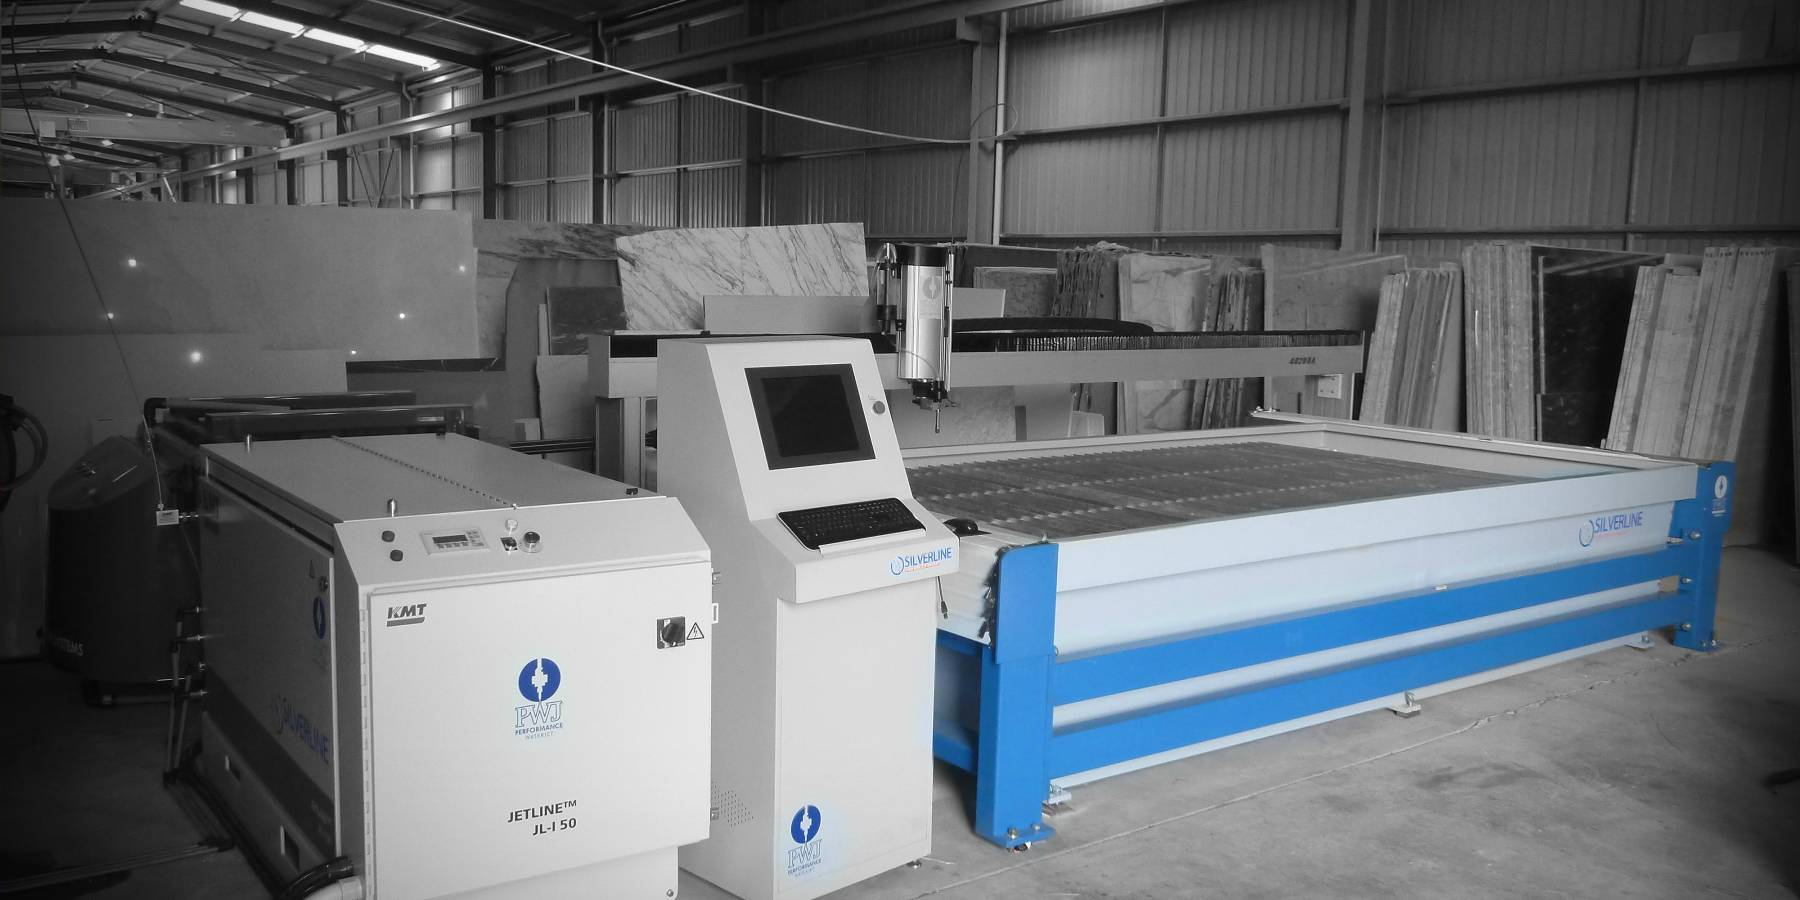 Silverline Waterjet Machine image